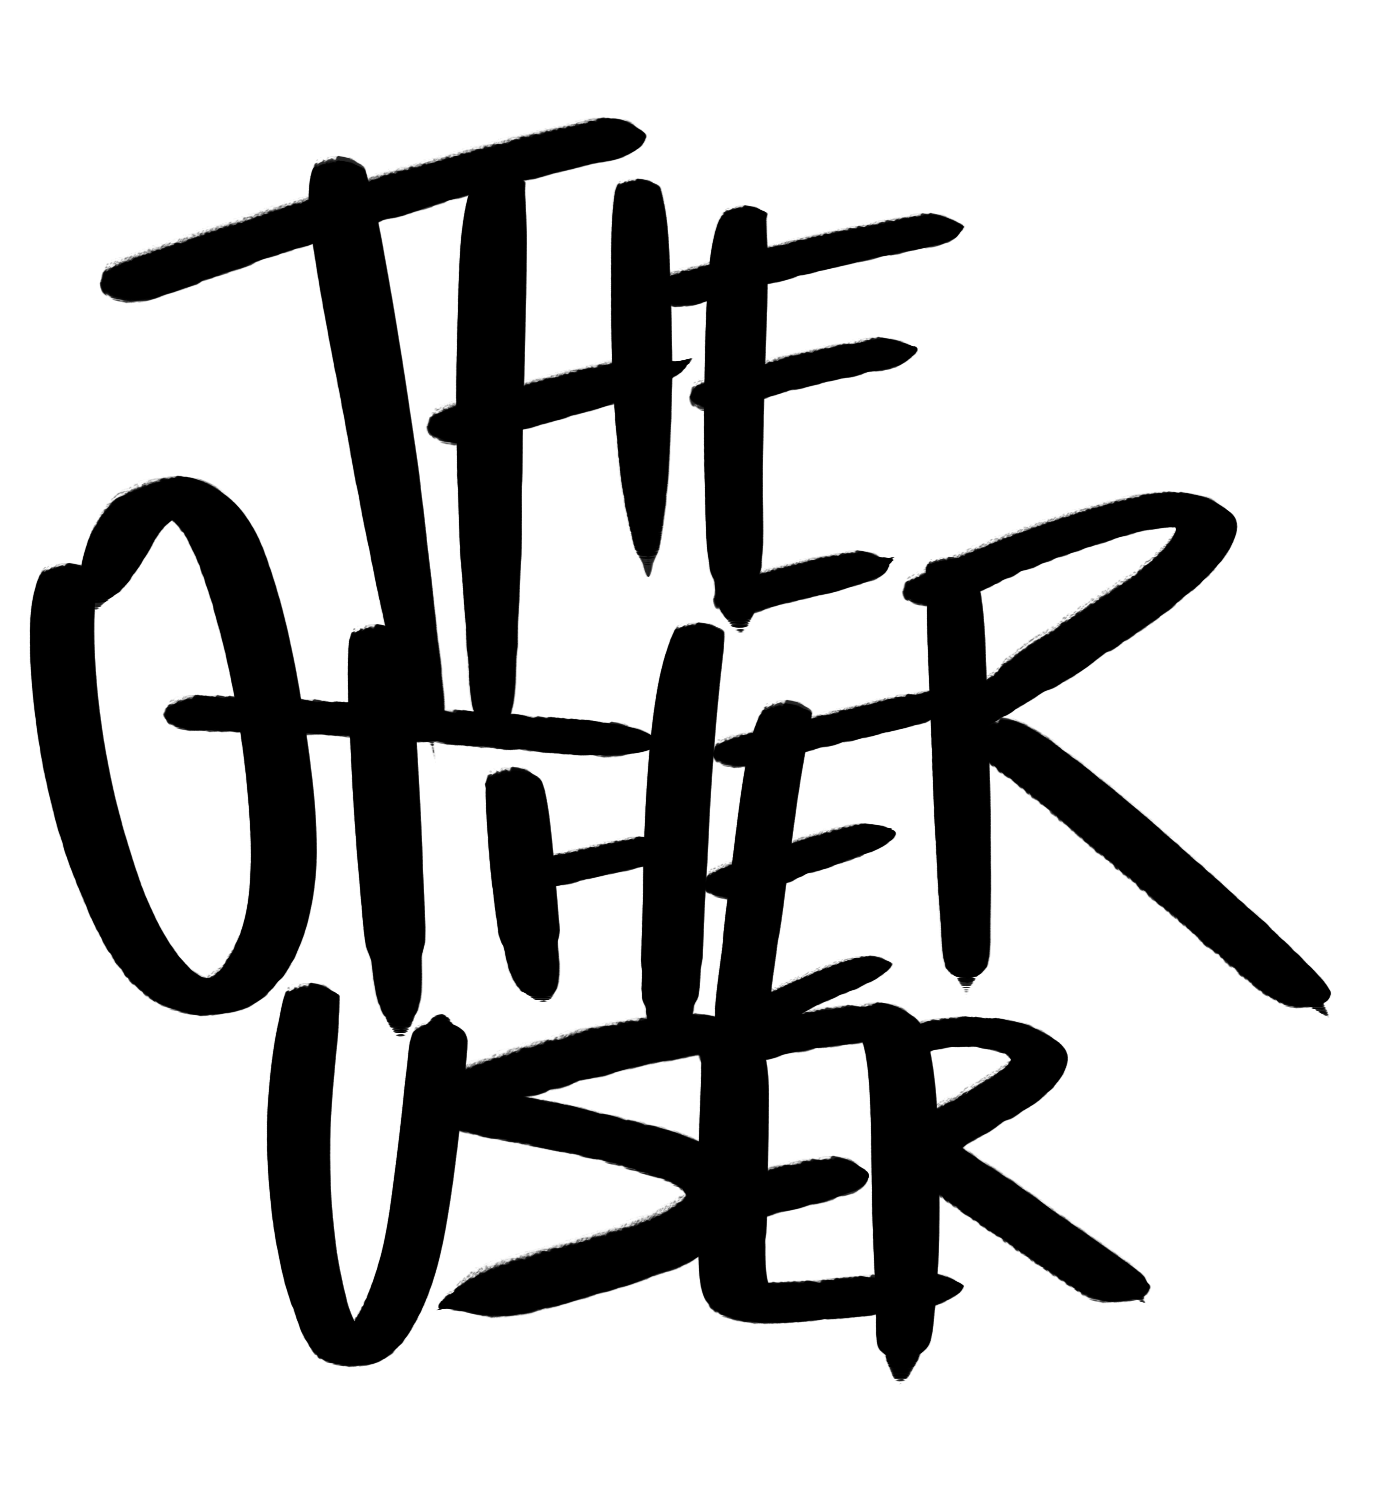 THE OTHER USER